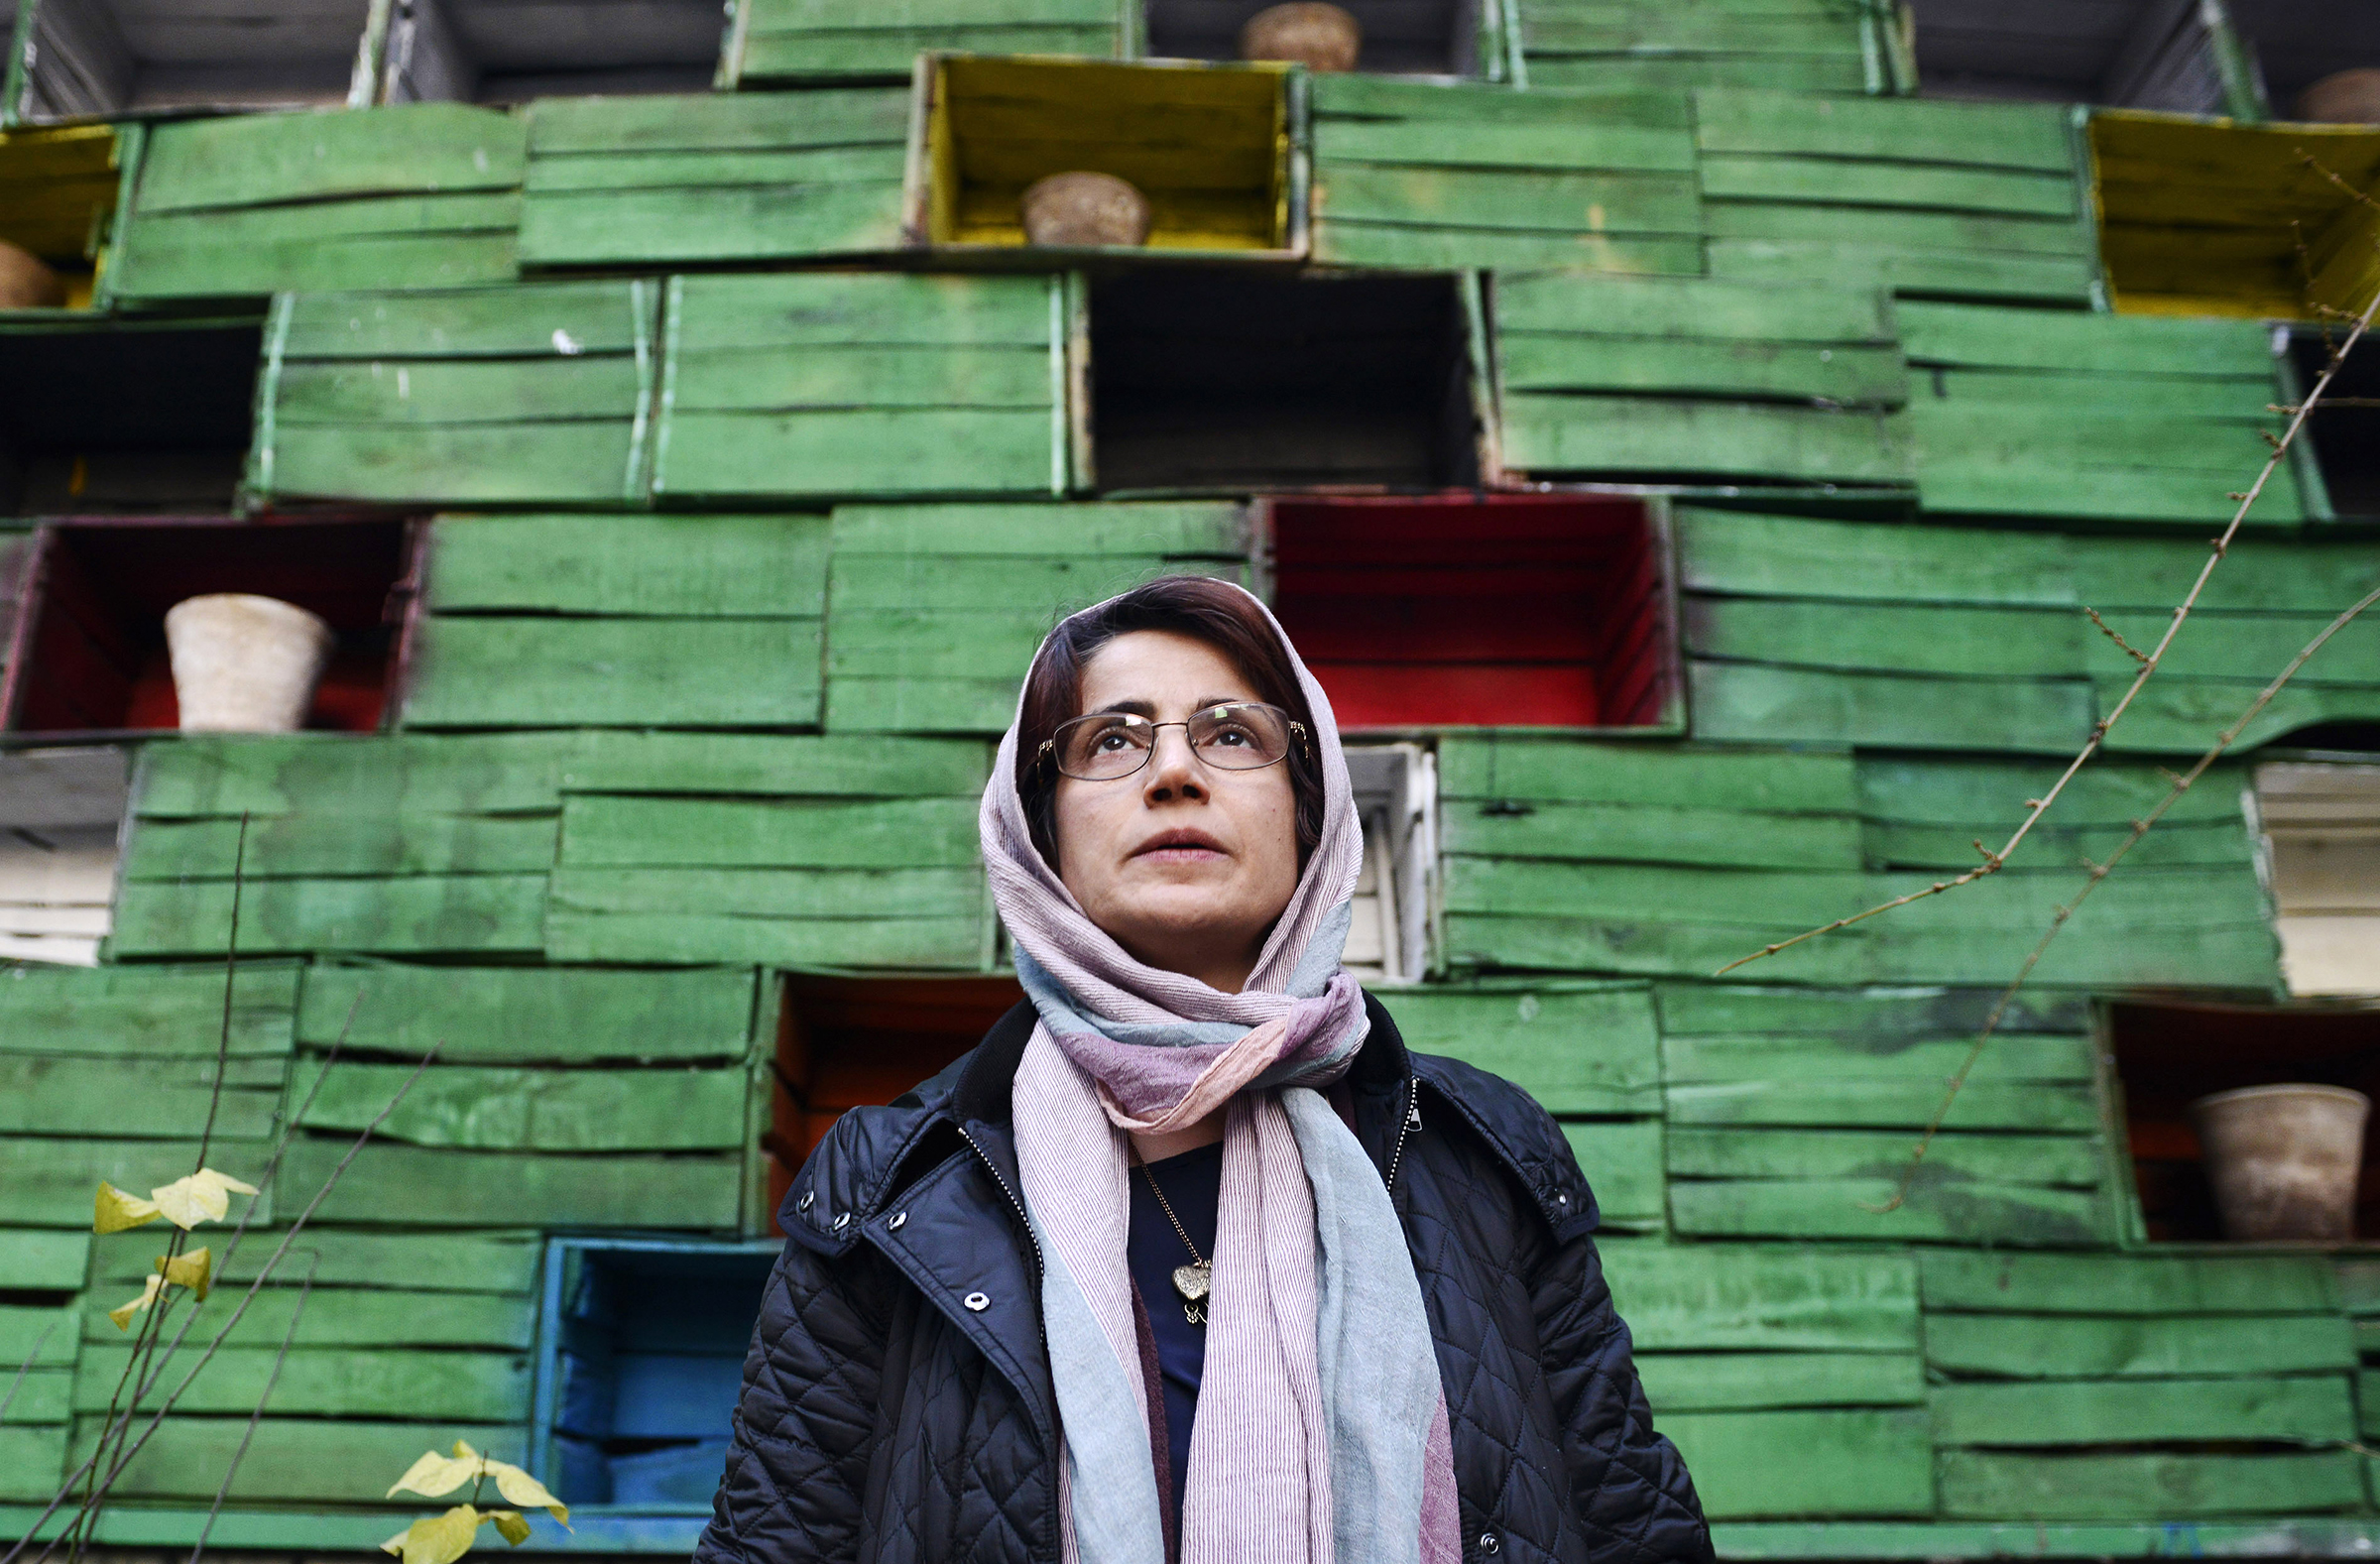 Human rights lawyer Nasrin Sotoudeh photographed in the garden of her office in Tehran on Dec. 9, 2014.